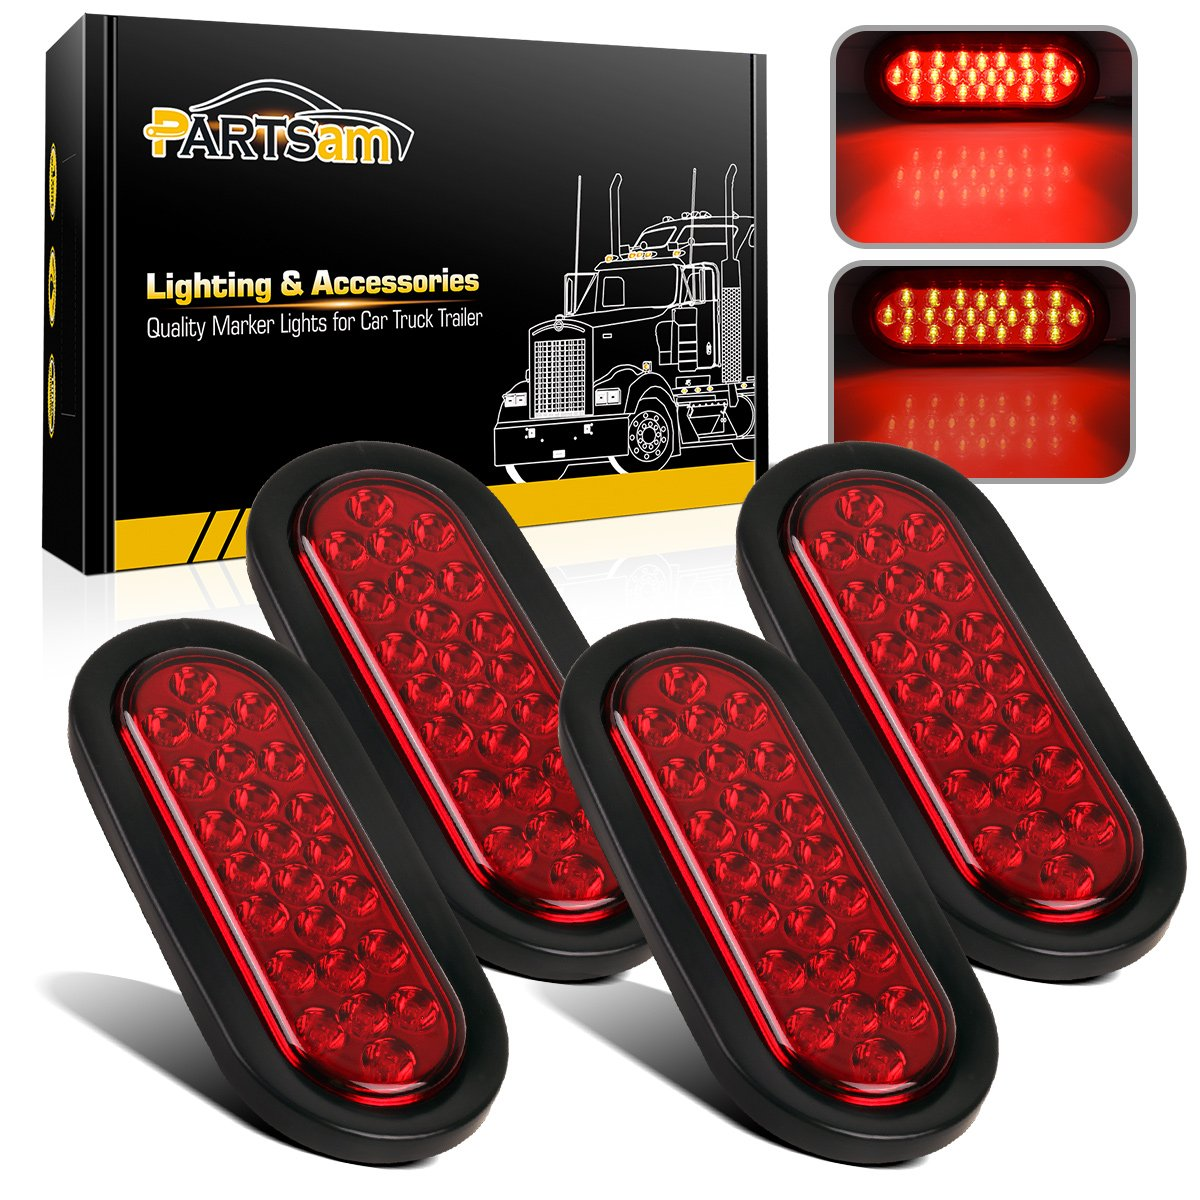 Amazon.com: Partsam 4 x 12V 6 inch Oval Red 24 LED Doides Stop Tail Turn  Truck Tractor Trailer Boat Brake Sealed Marker Lights Waterproof w/Grommet  Mount: ...